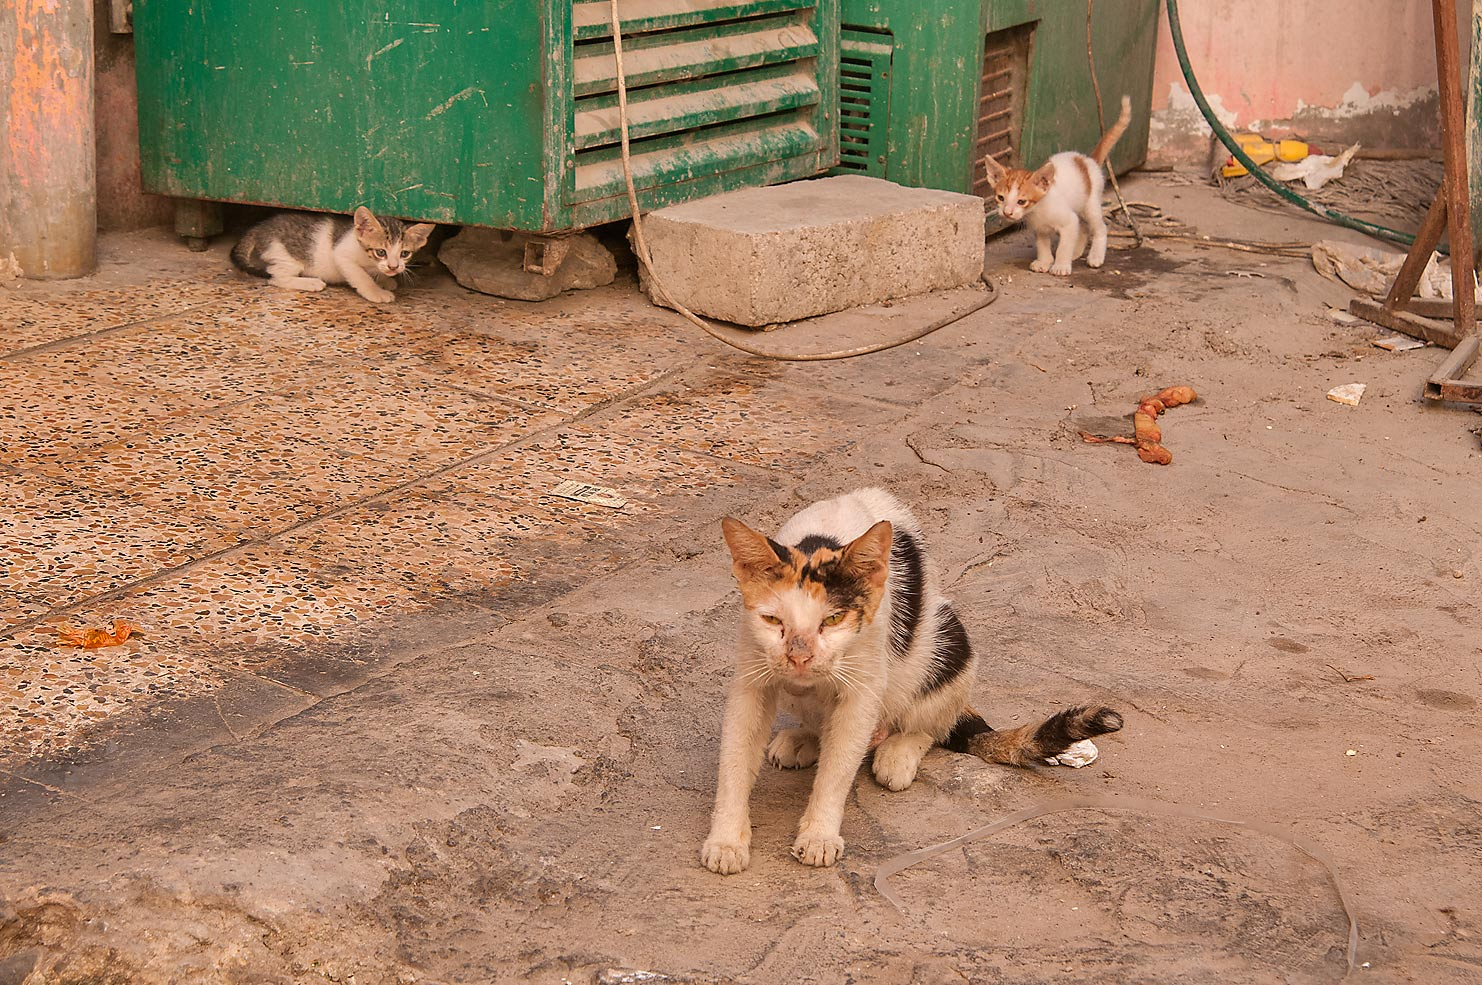 Cat guarding its kitten at Al Aqaba St., Fereej Abdel Aziz area. Doha, Qatar